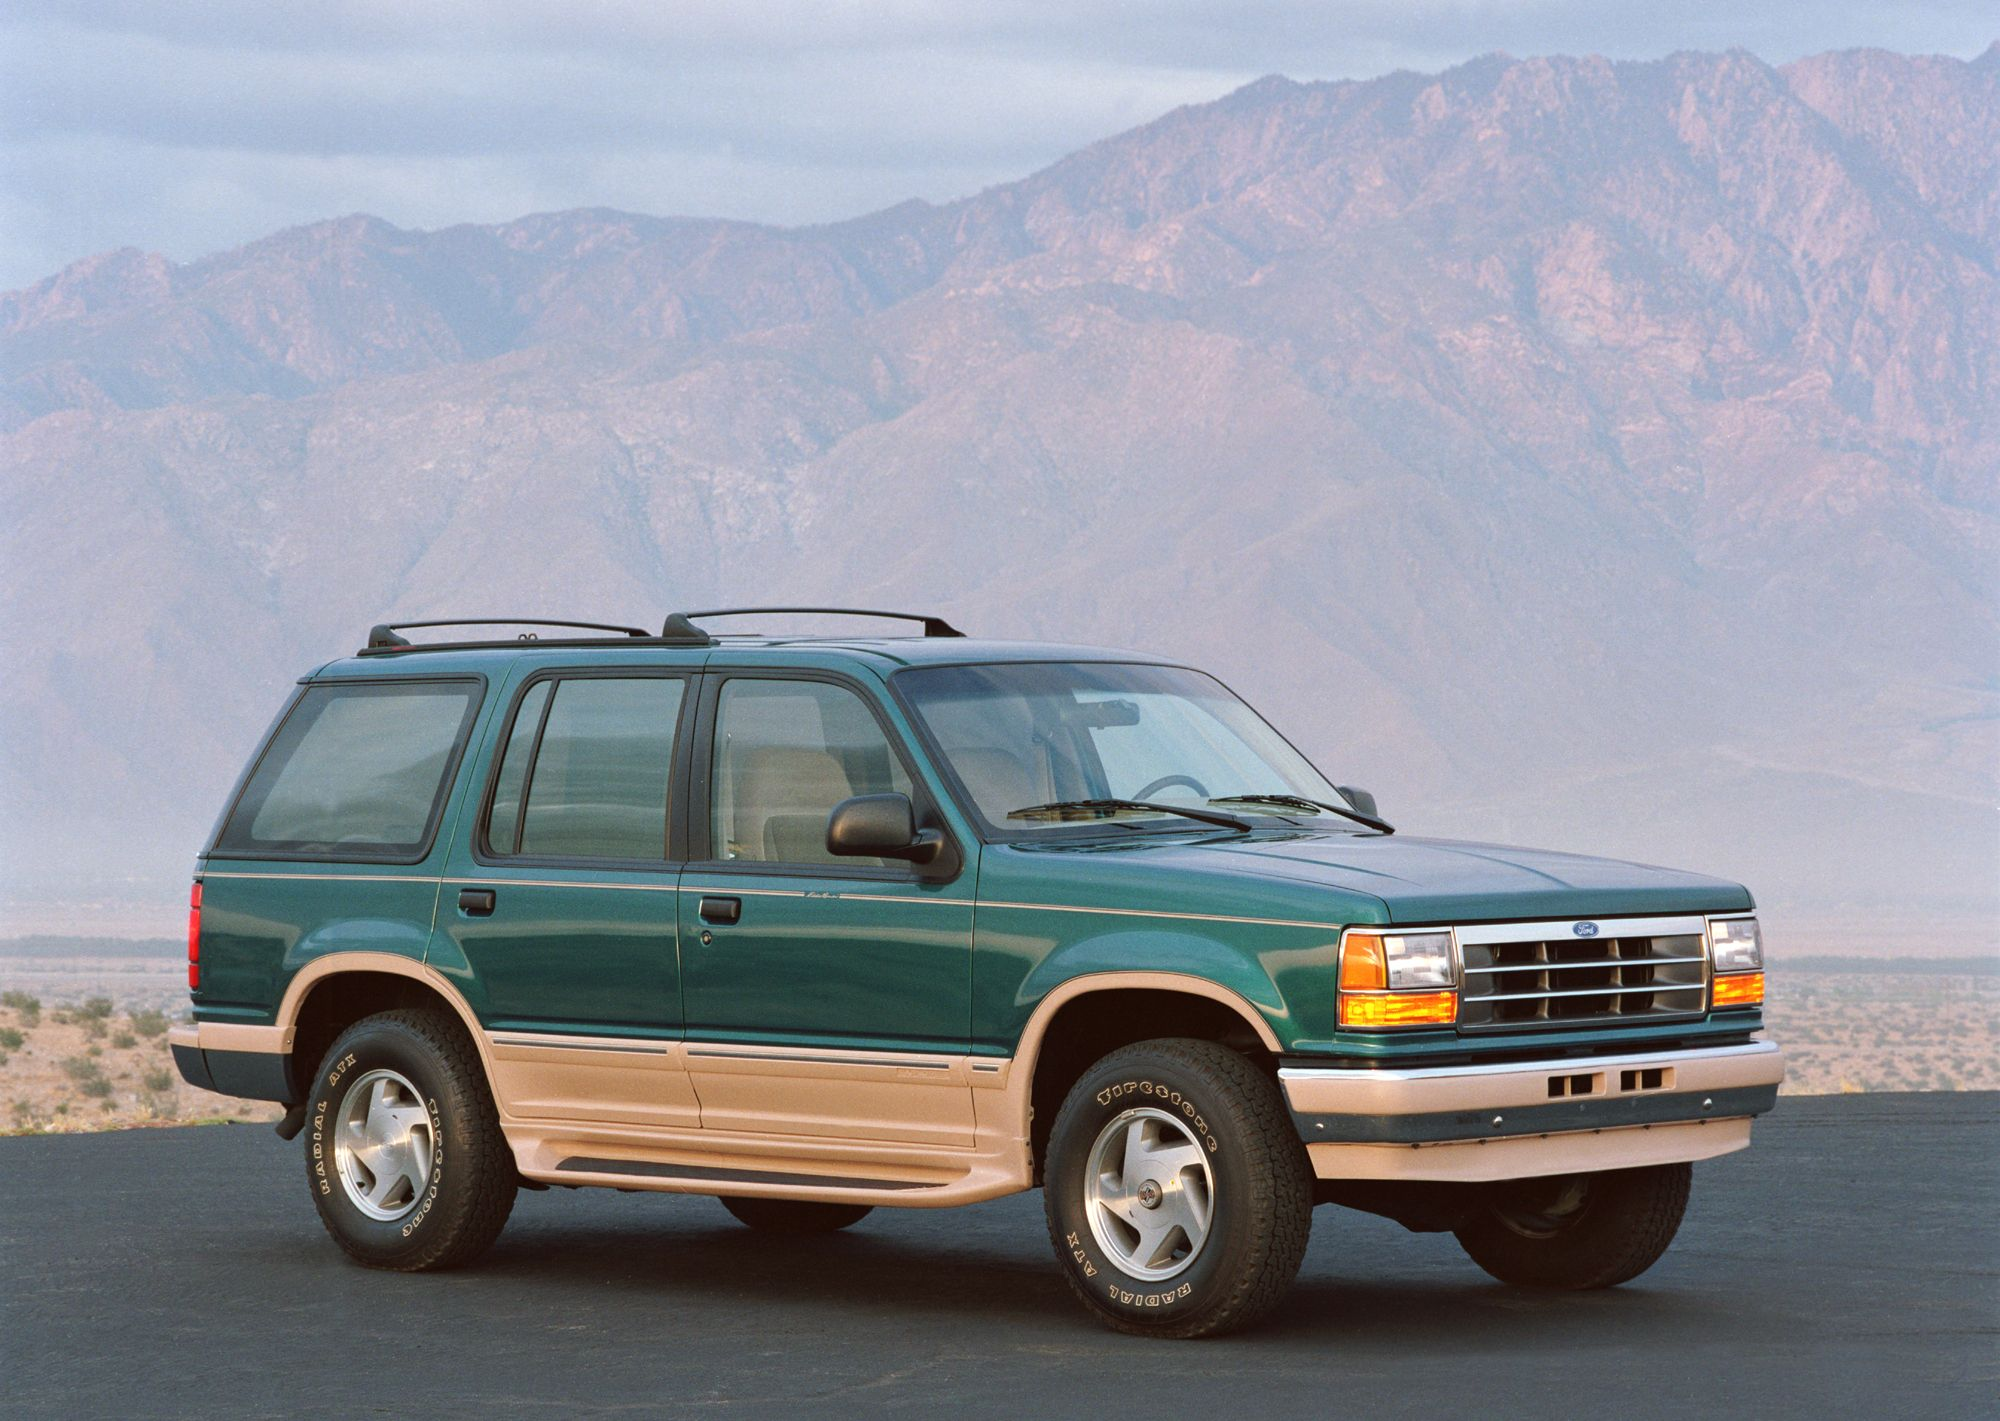 The History of the Ford Explorer, from 1990 to Today